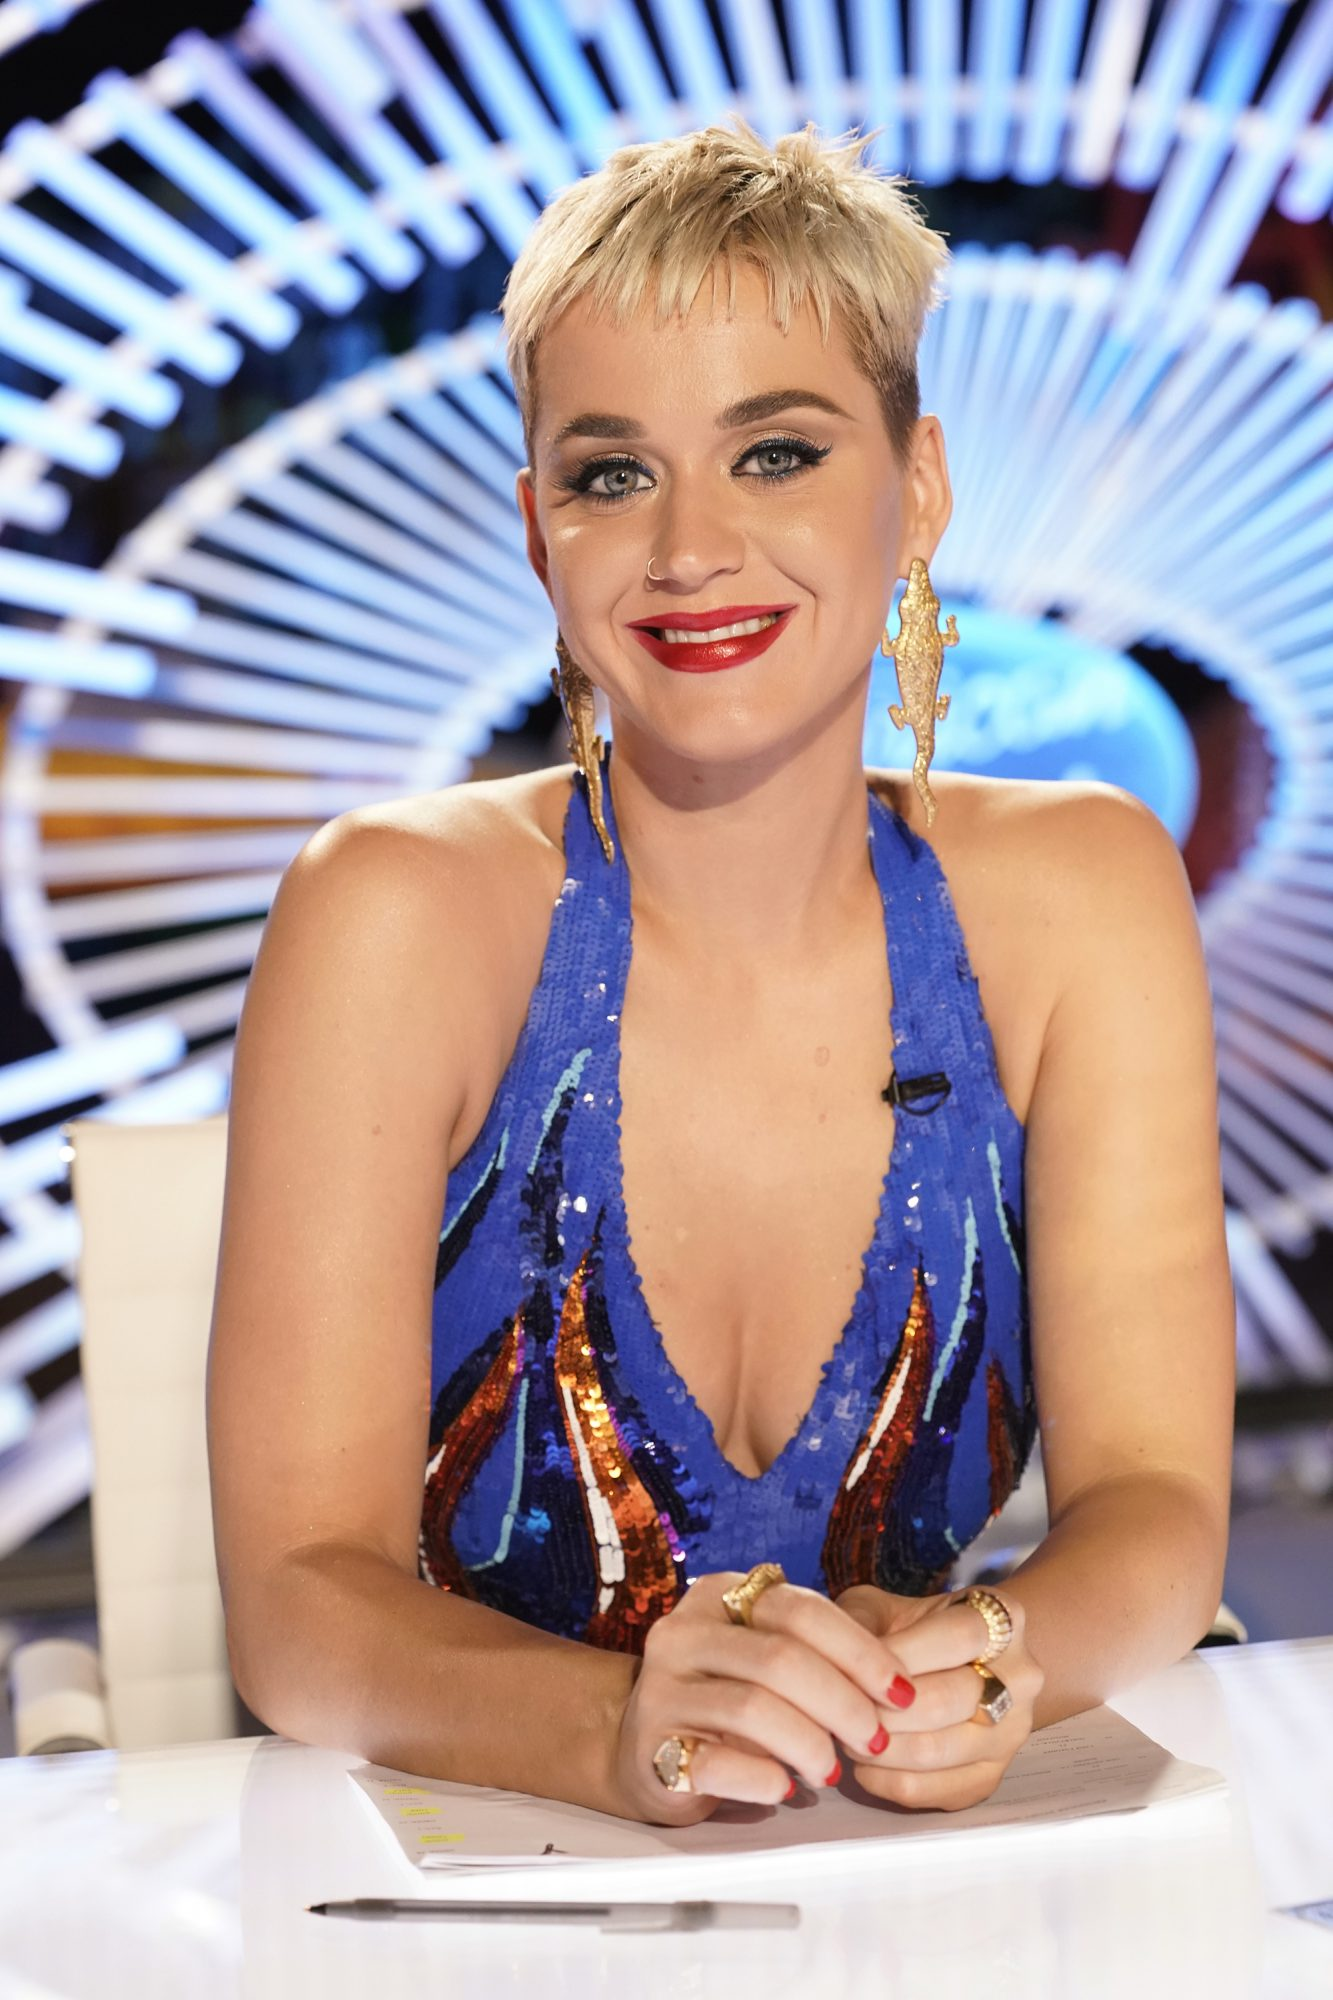 Katy Perry Gets Filler Injected Under Her Eyes to Banish Dark